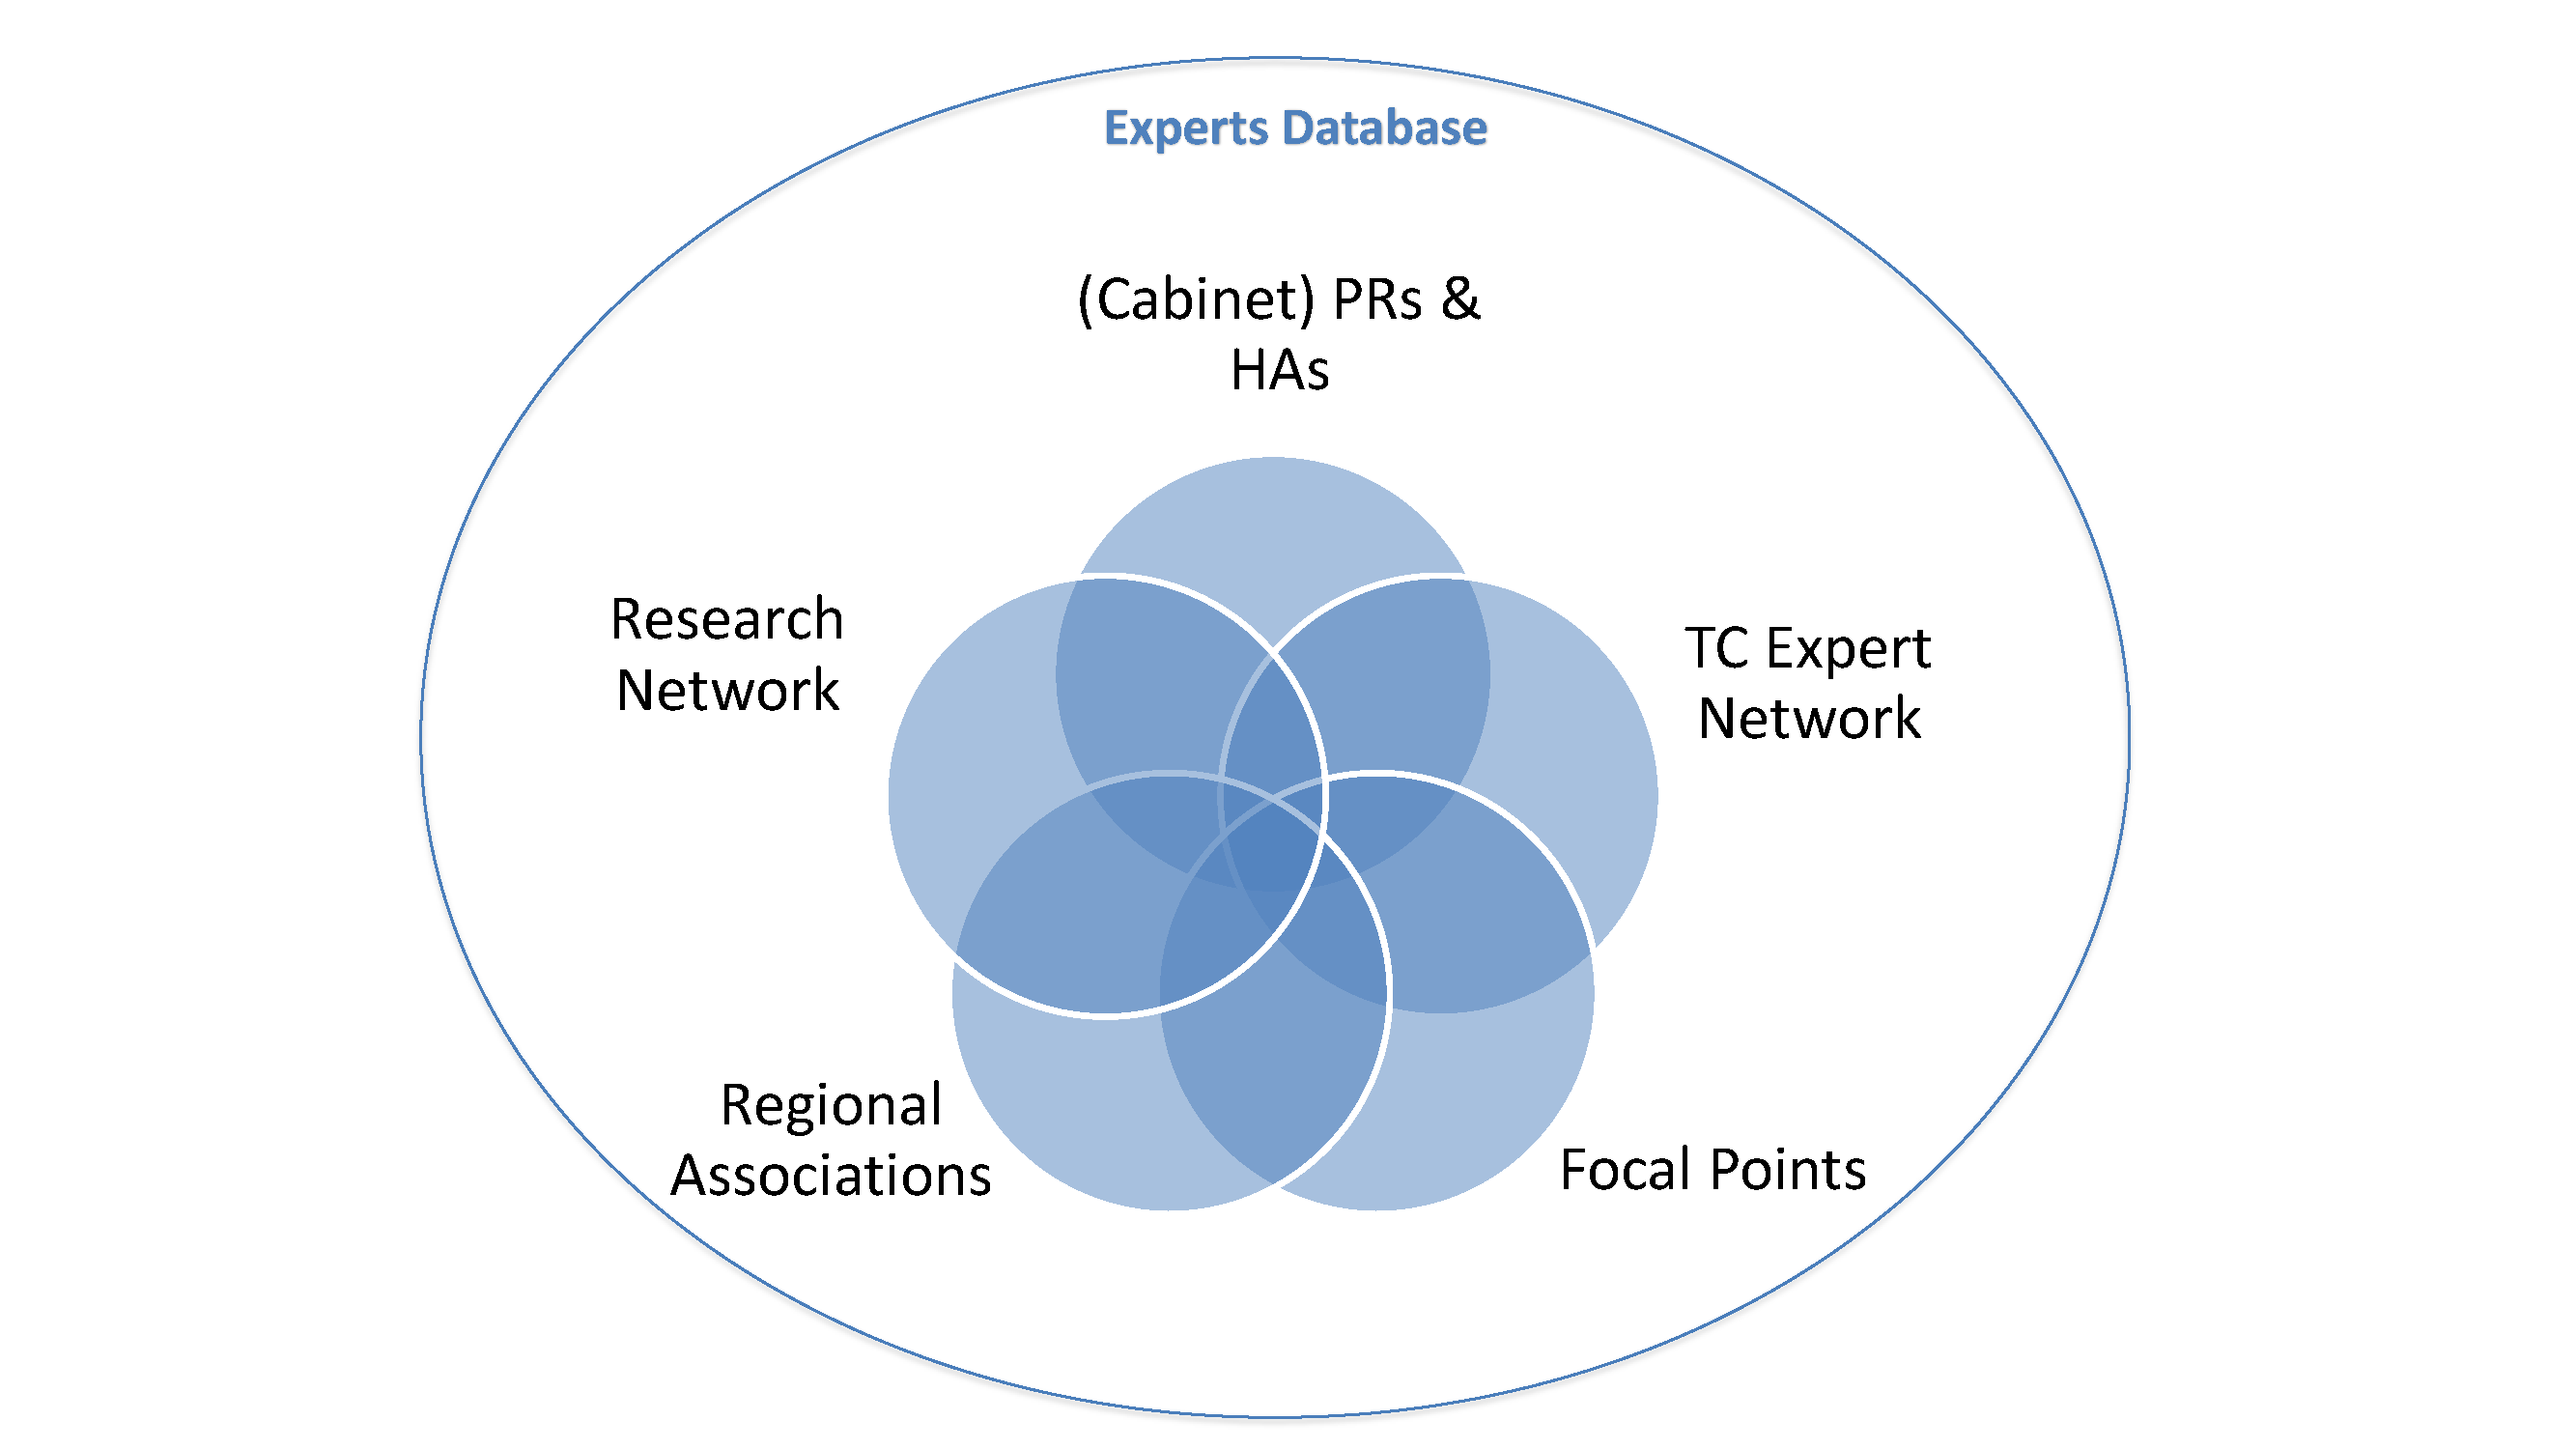 Structure of the WMO Experts Database